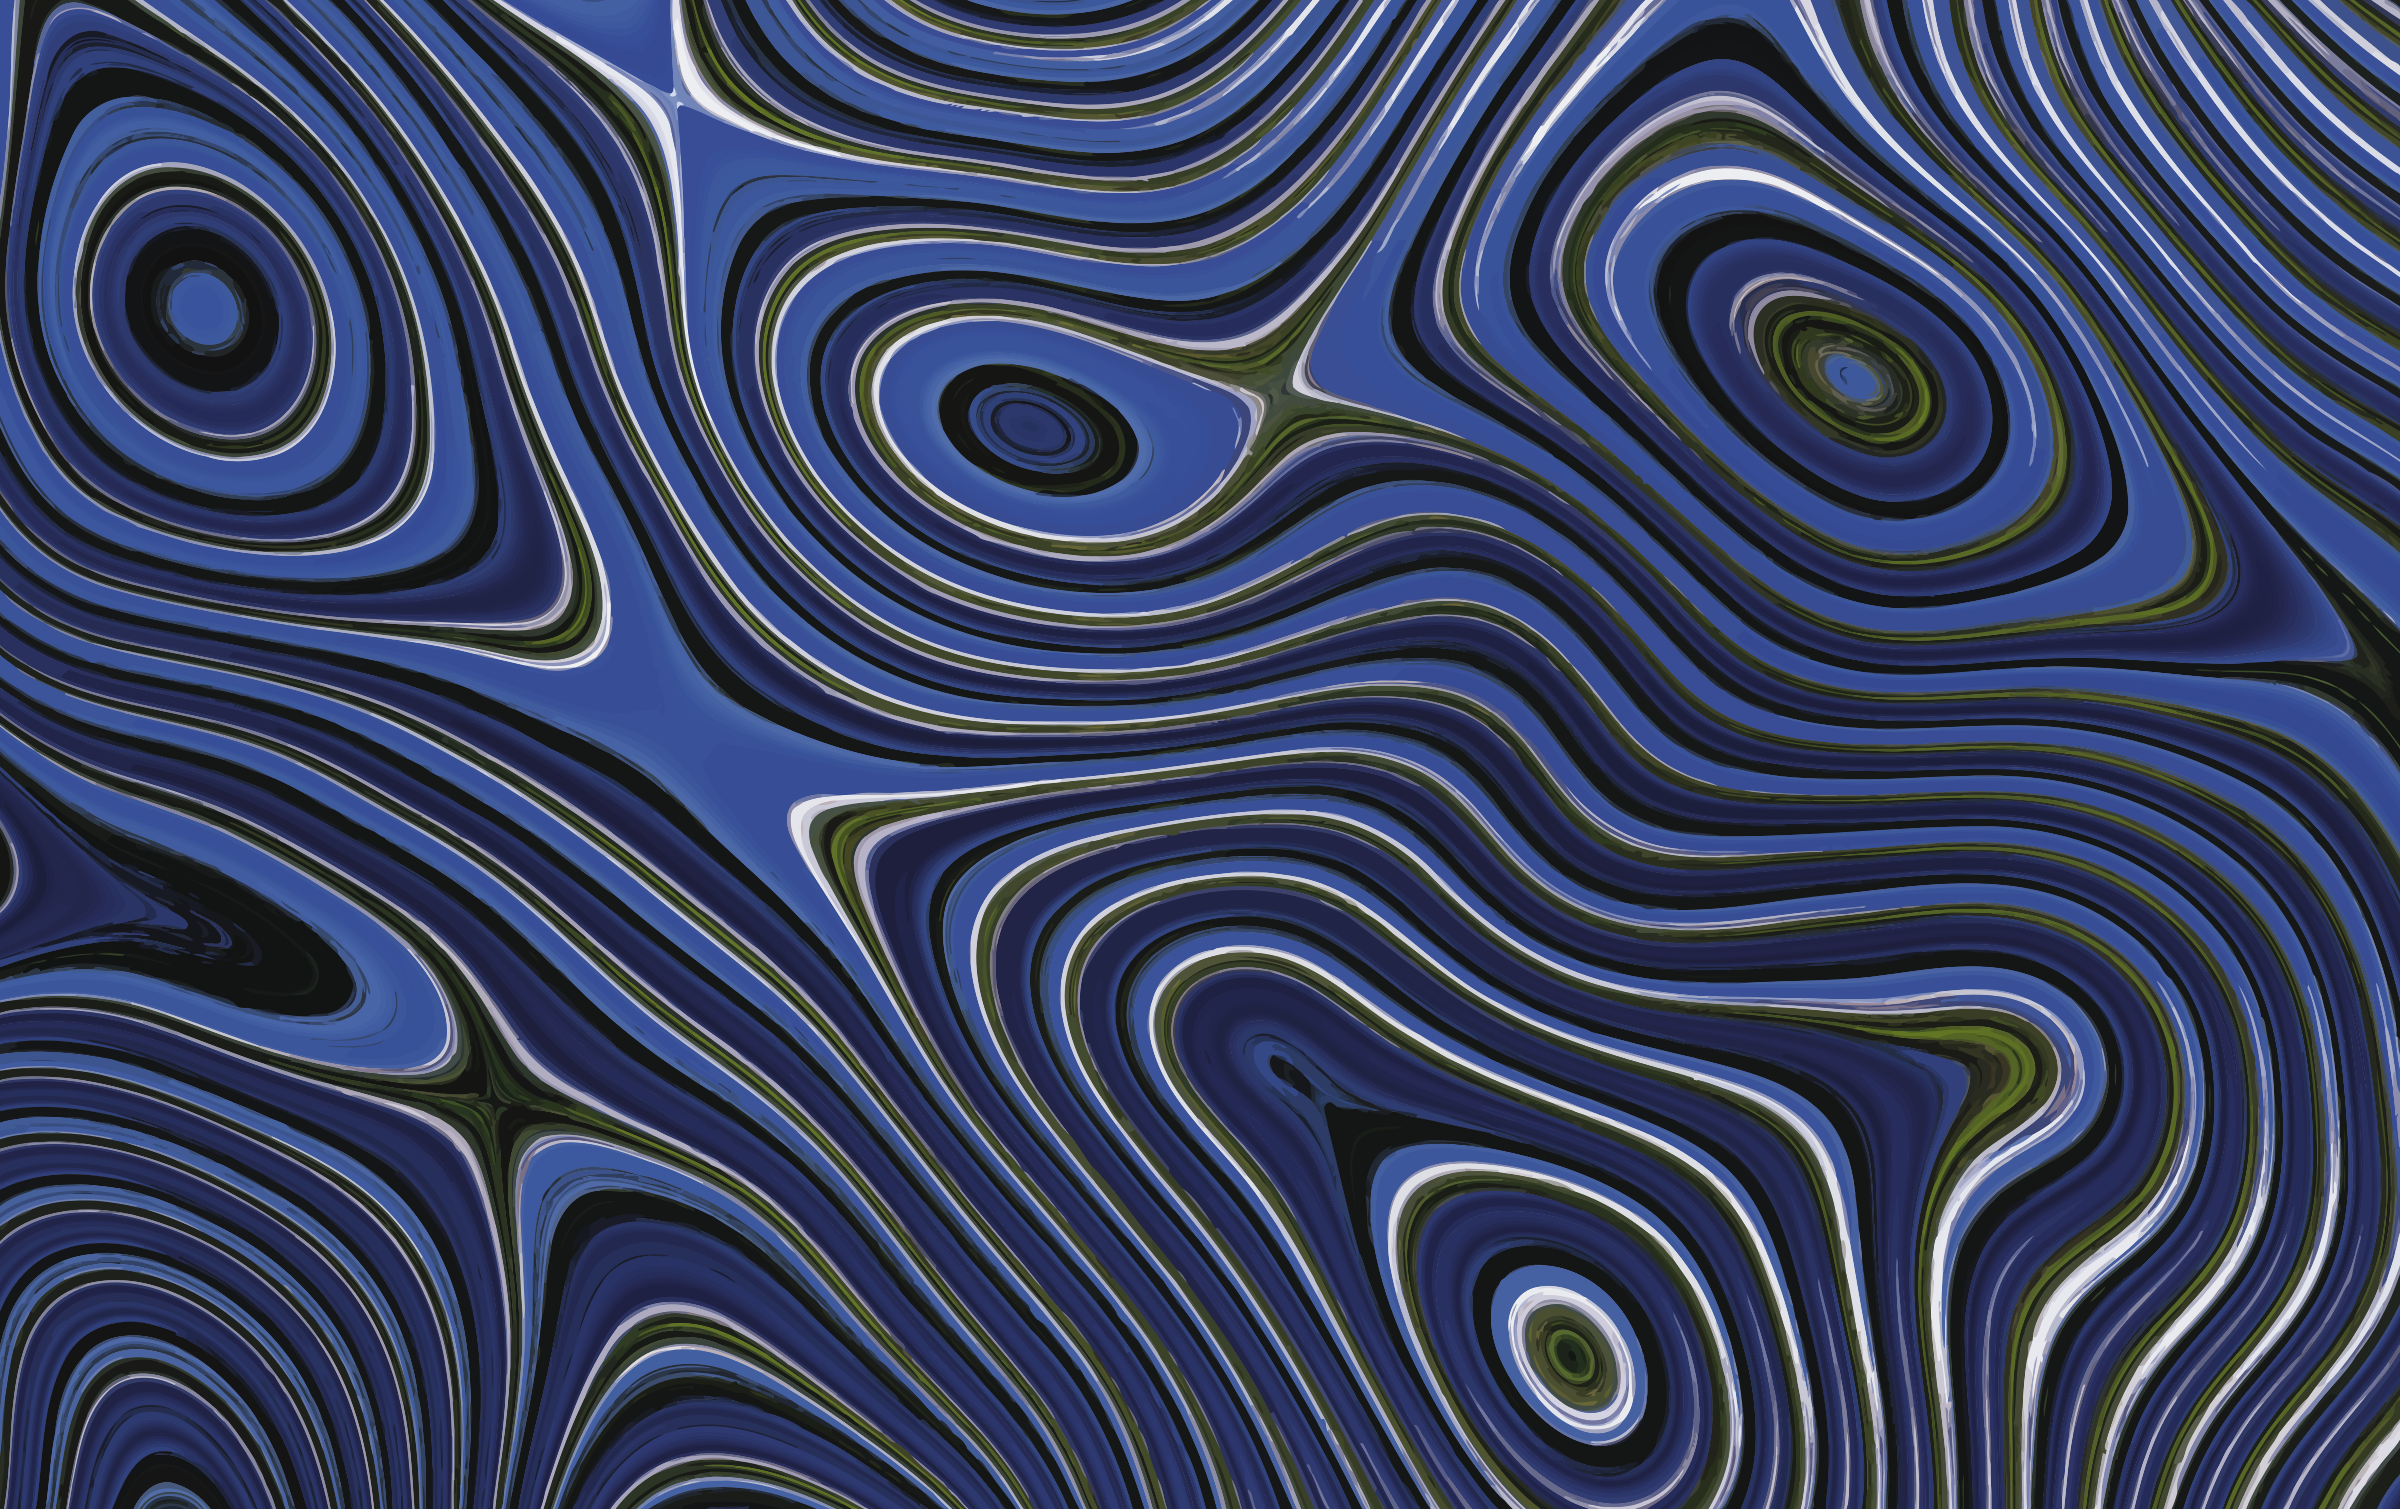 Background pattern 115 by Firkin